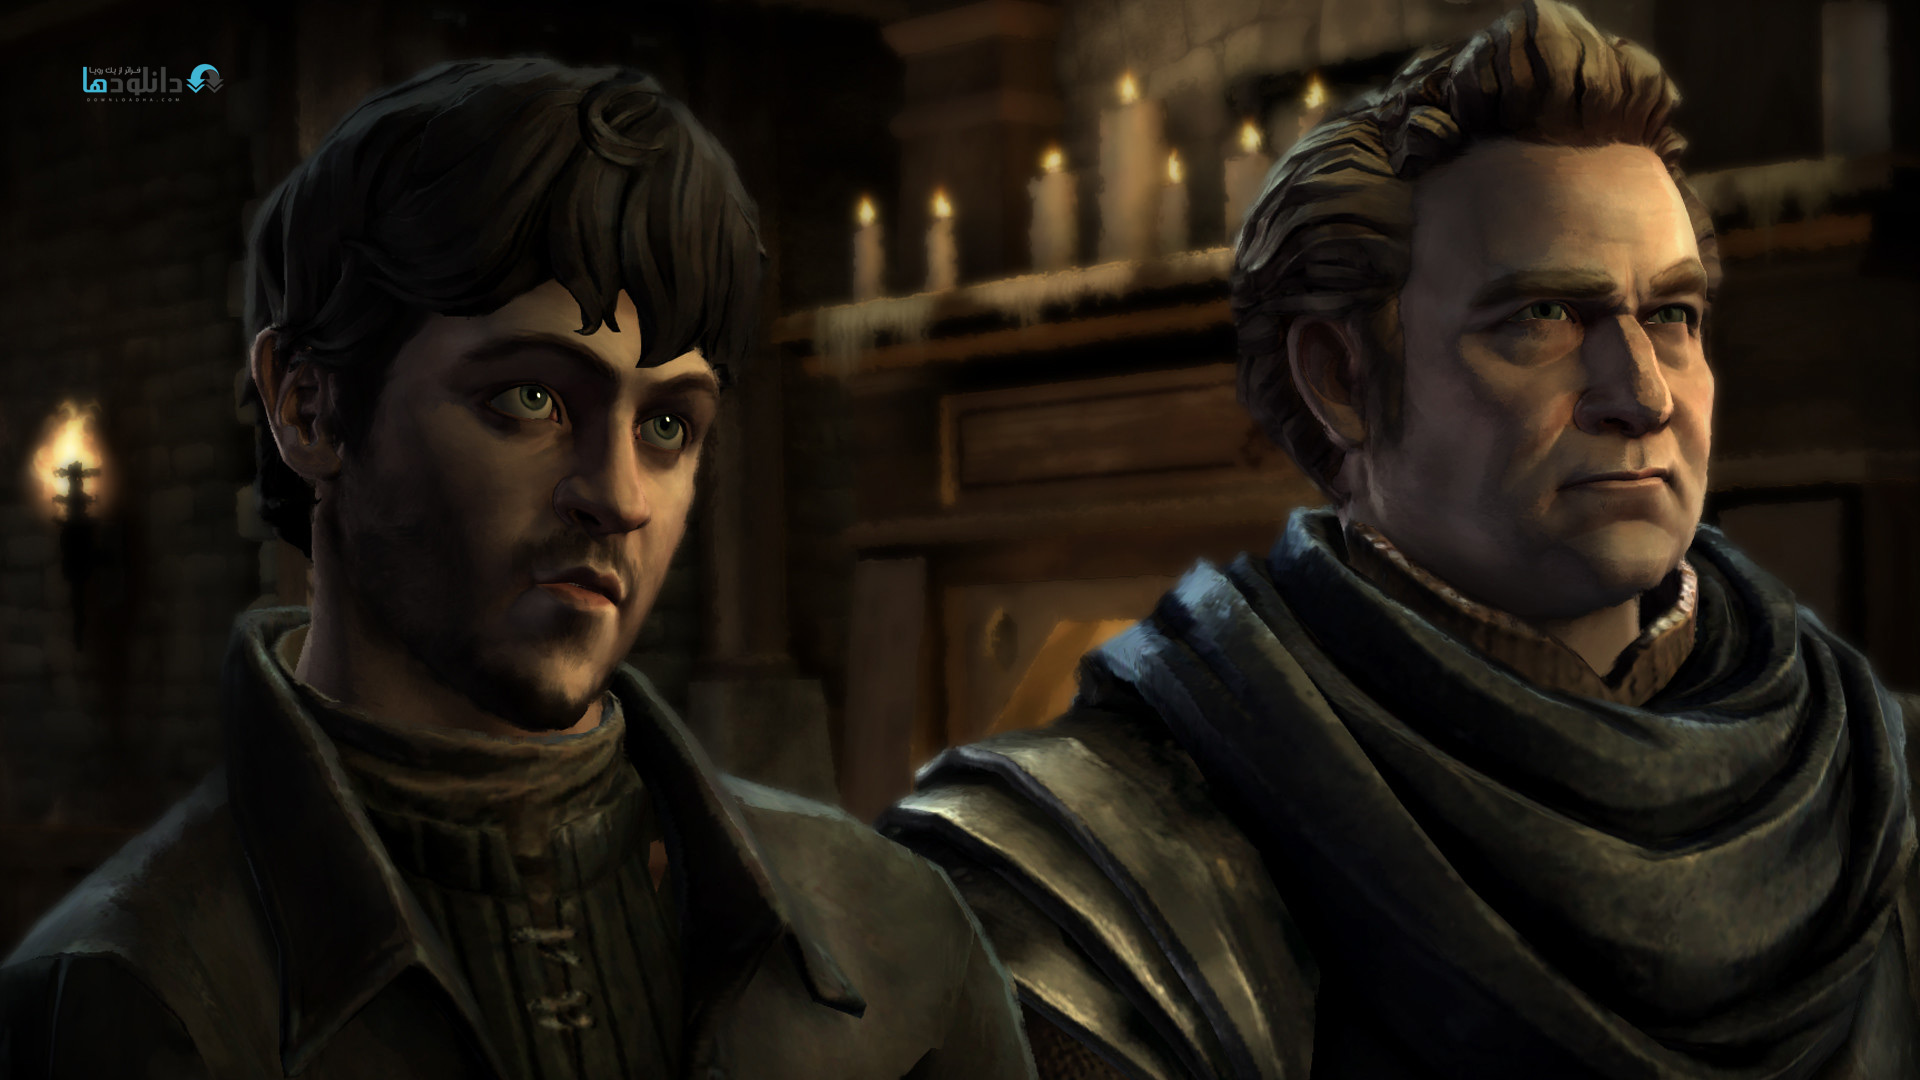 http://img5.downloadha.com/hosein/Game/December%202014/02/Game-of-Thrones-A-Telltale-Games-Series-screenshots-04-large.jpg